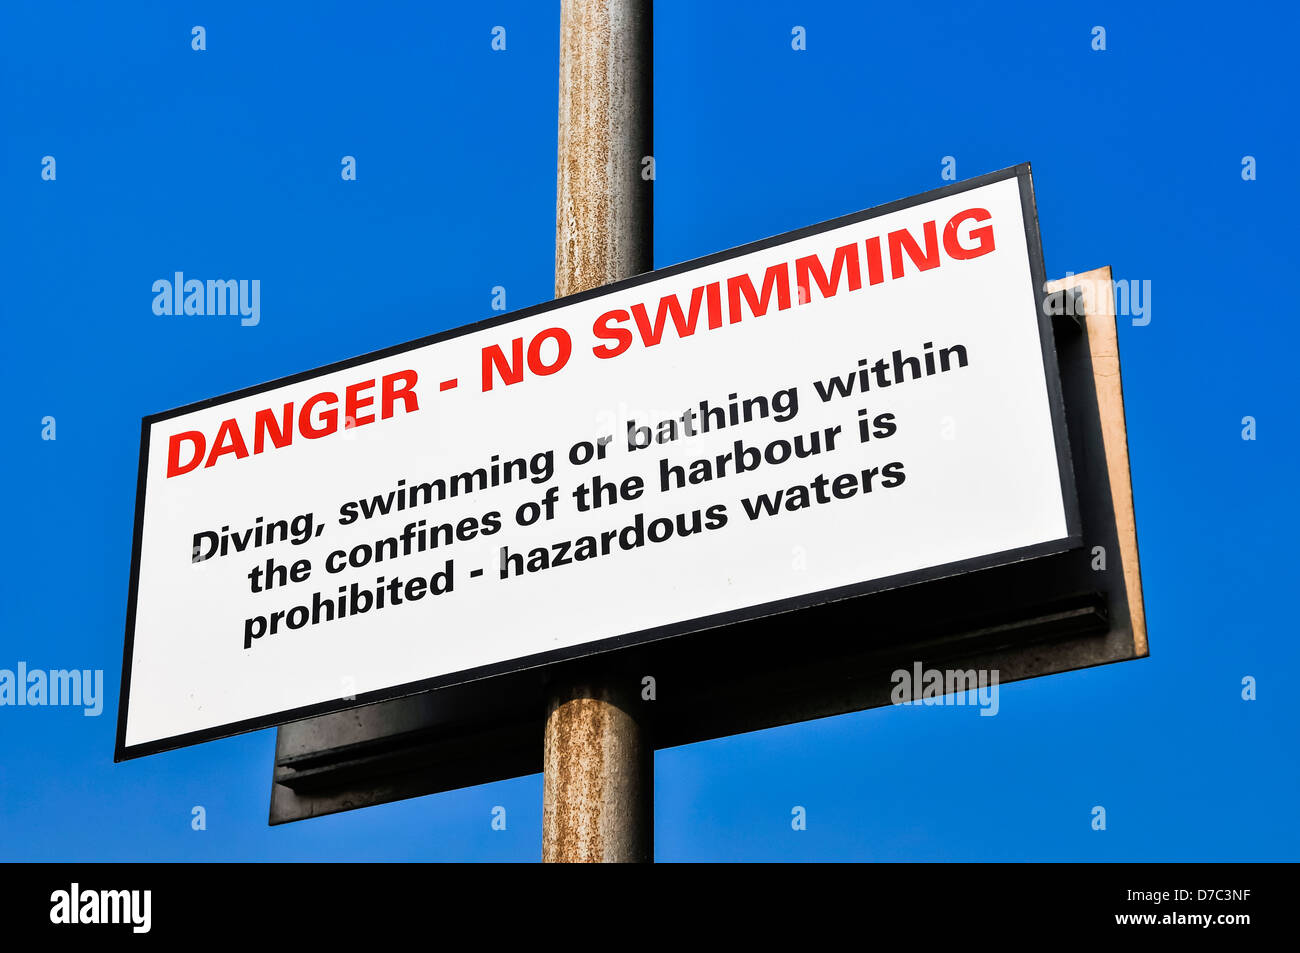 Sign at a harbour warning against swimming due to hazardous waters - Stock Image